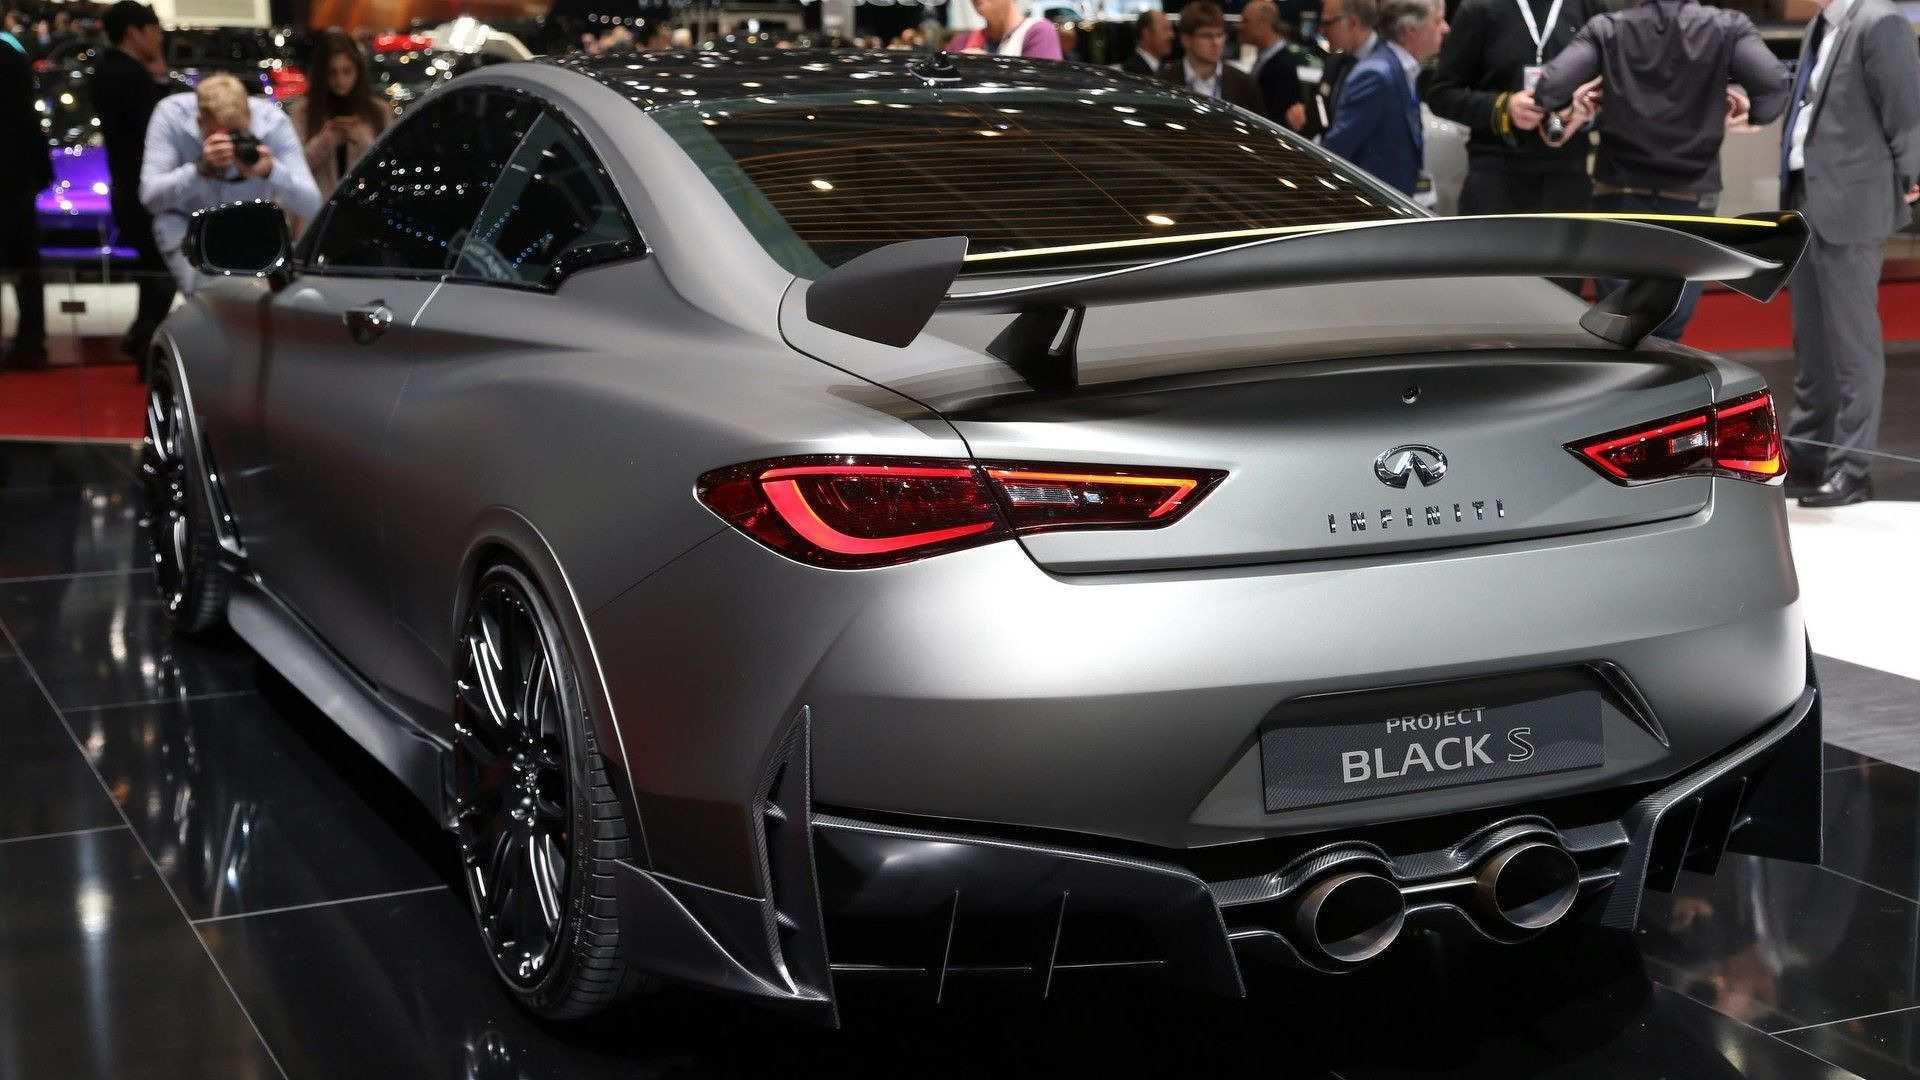 20 Concept of 2020 Infiniti Q60 Project Black S Exterior by 2020 Infiniti Q60 Project Black S